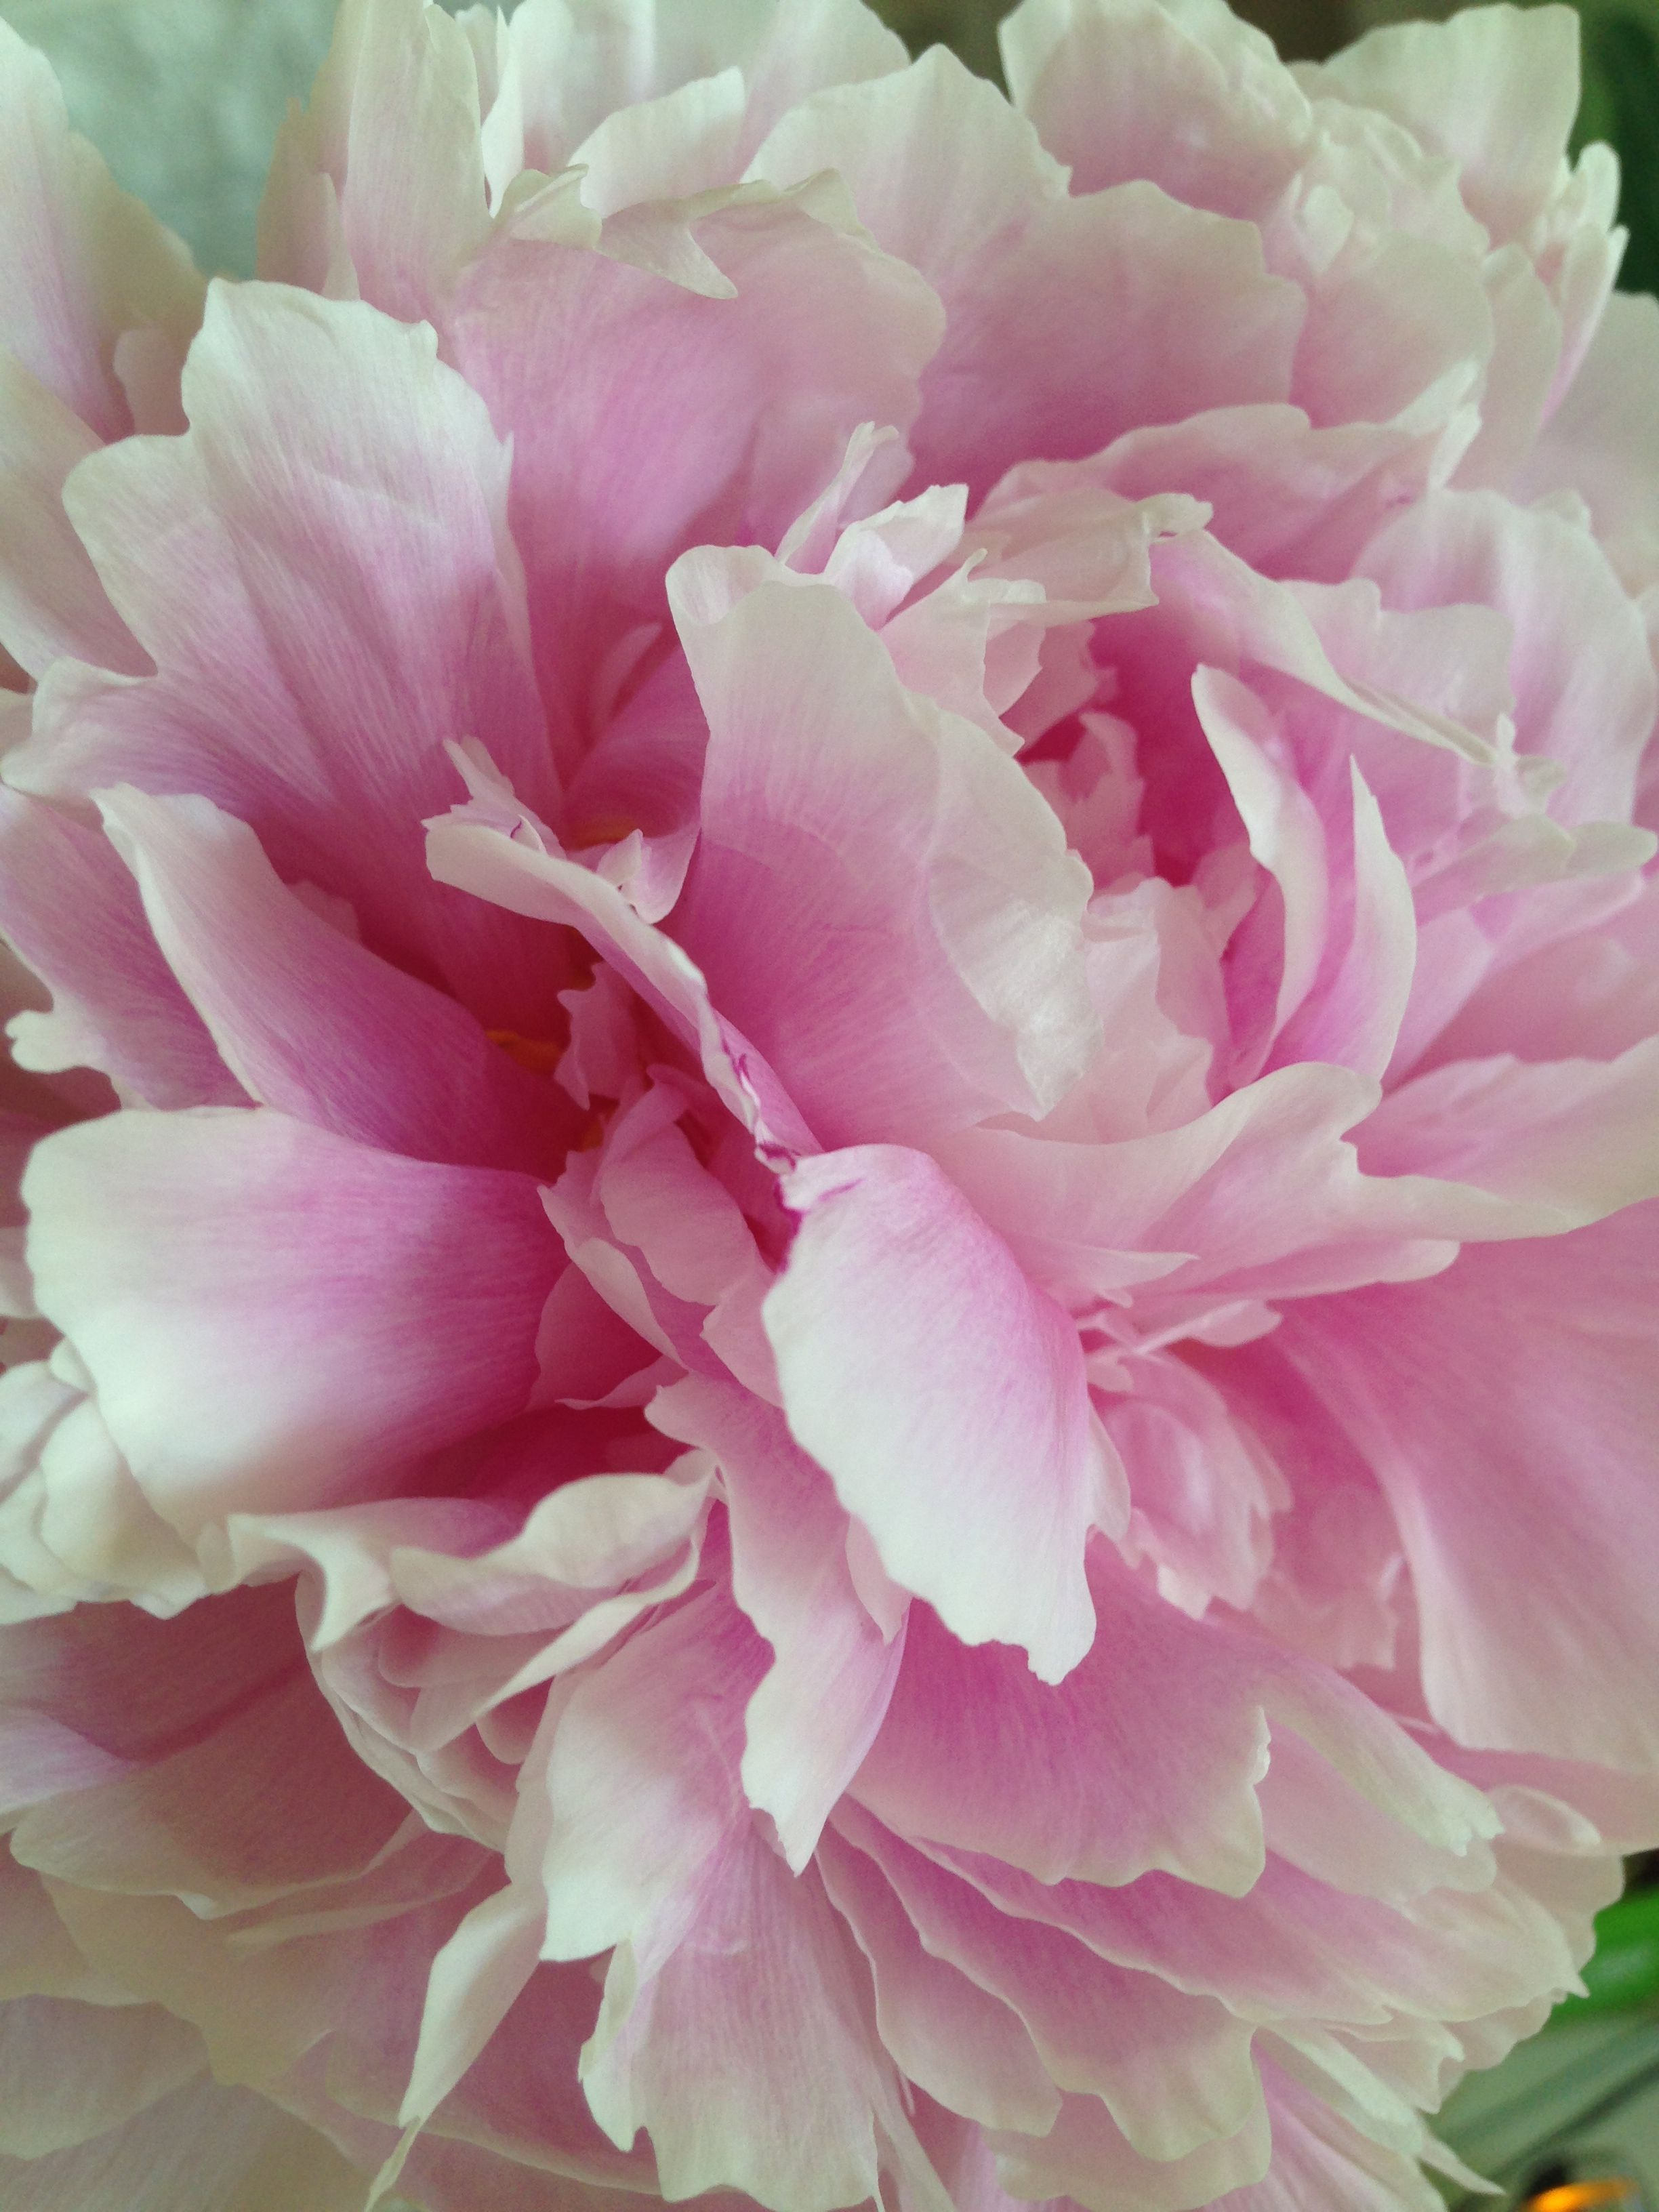 Peonies Almost Looks Fake Its So Beautiful When Its Fully Bloomed